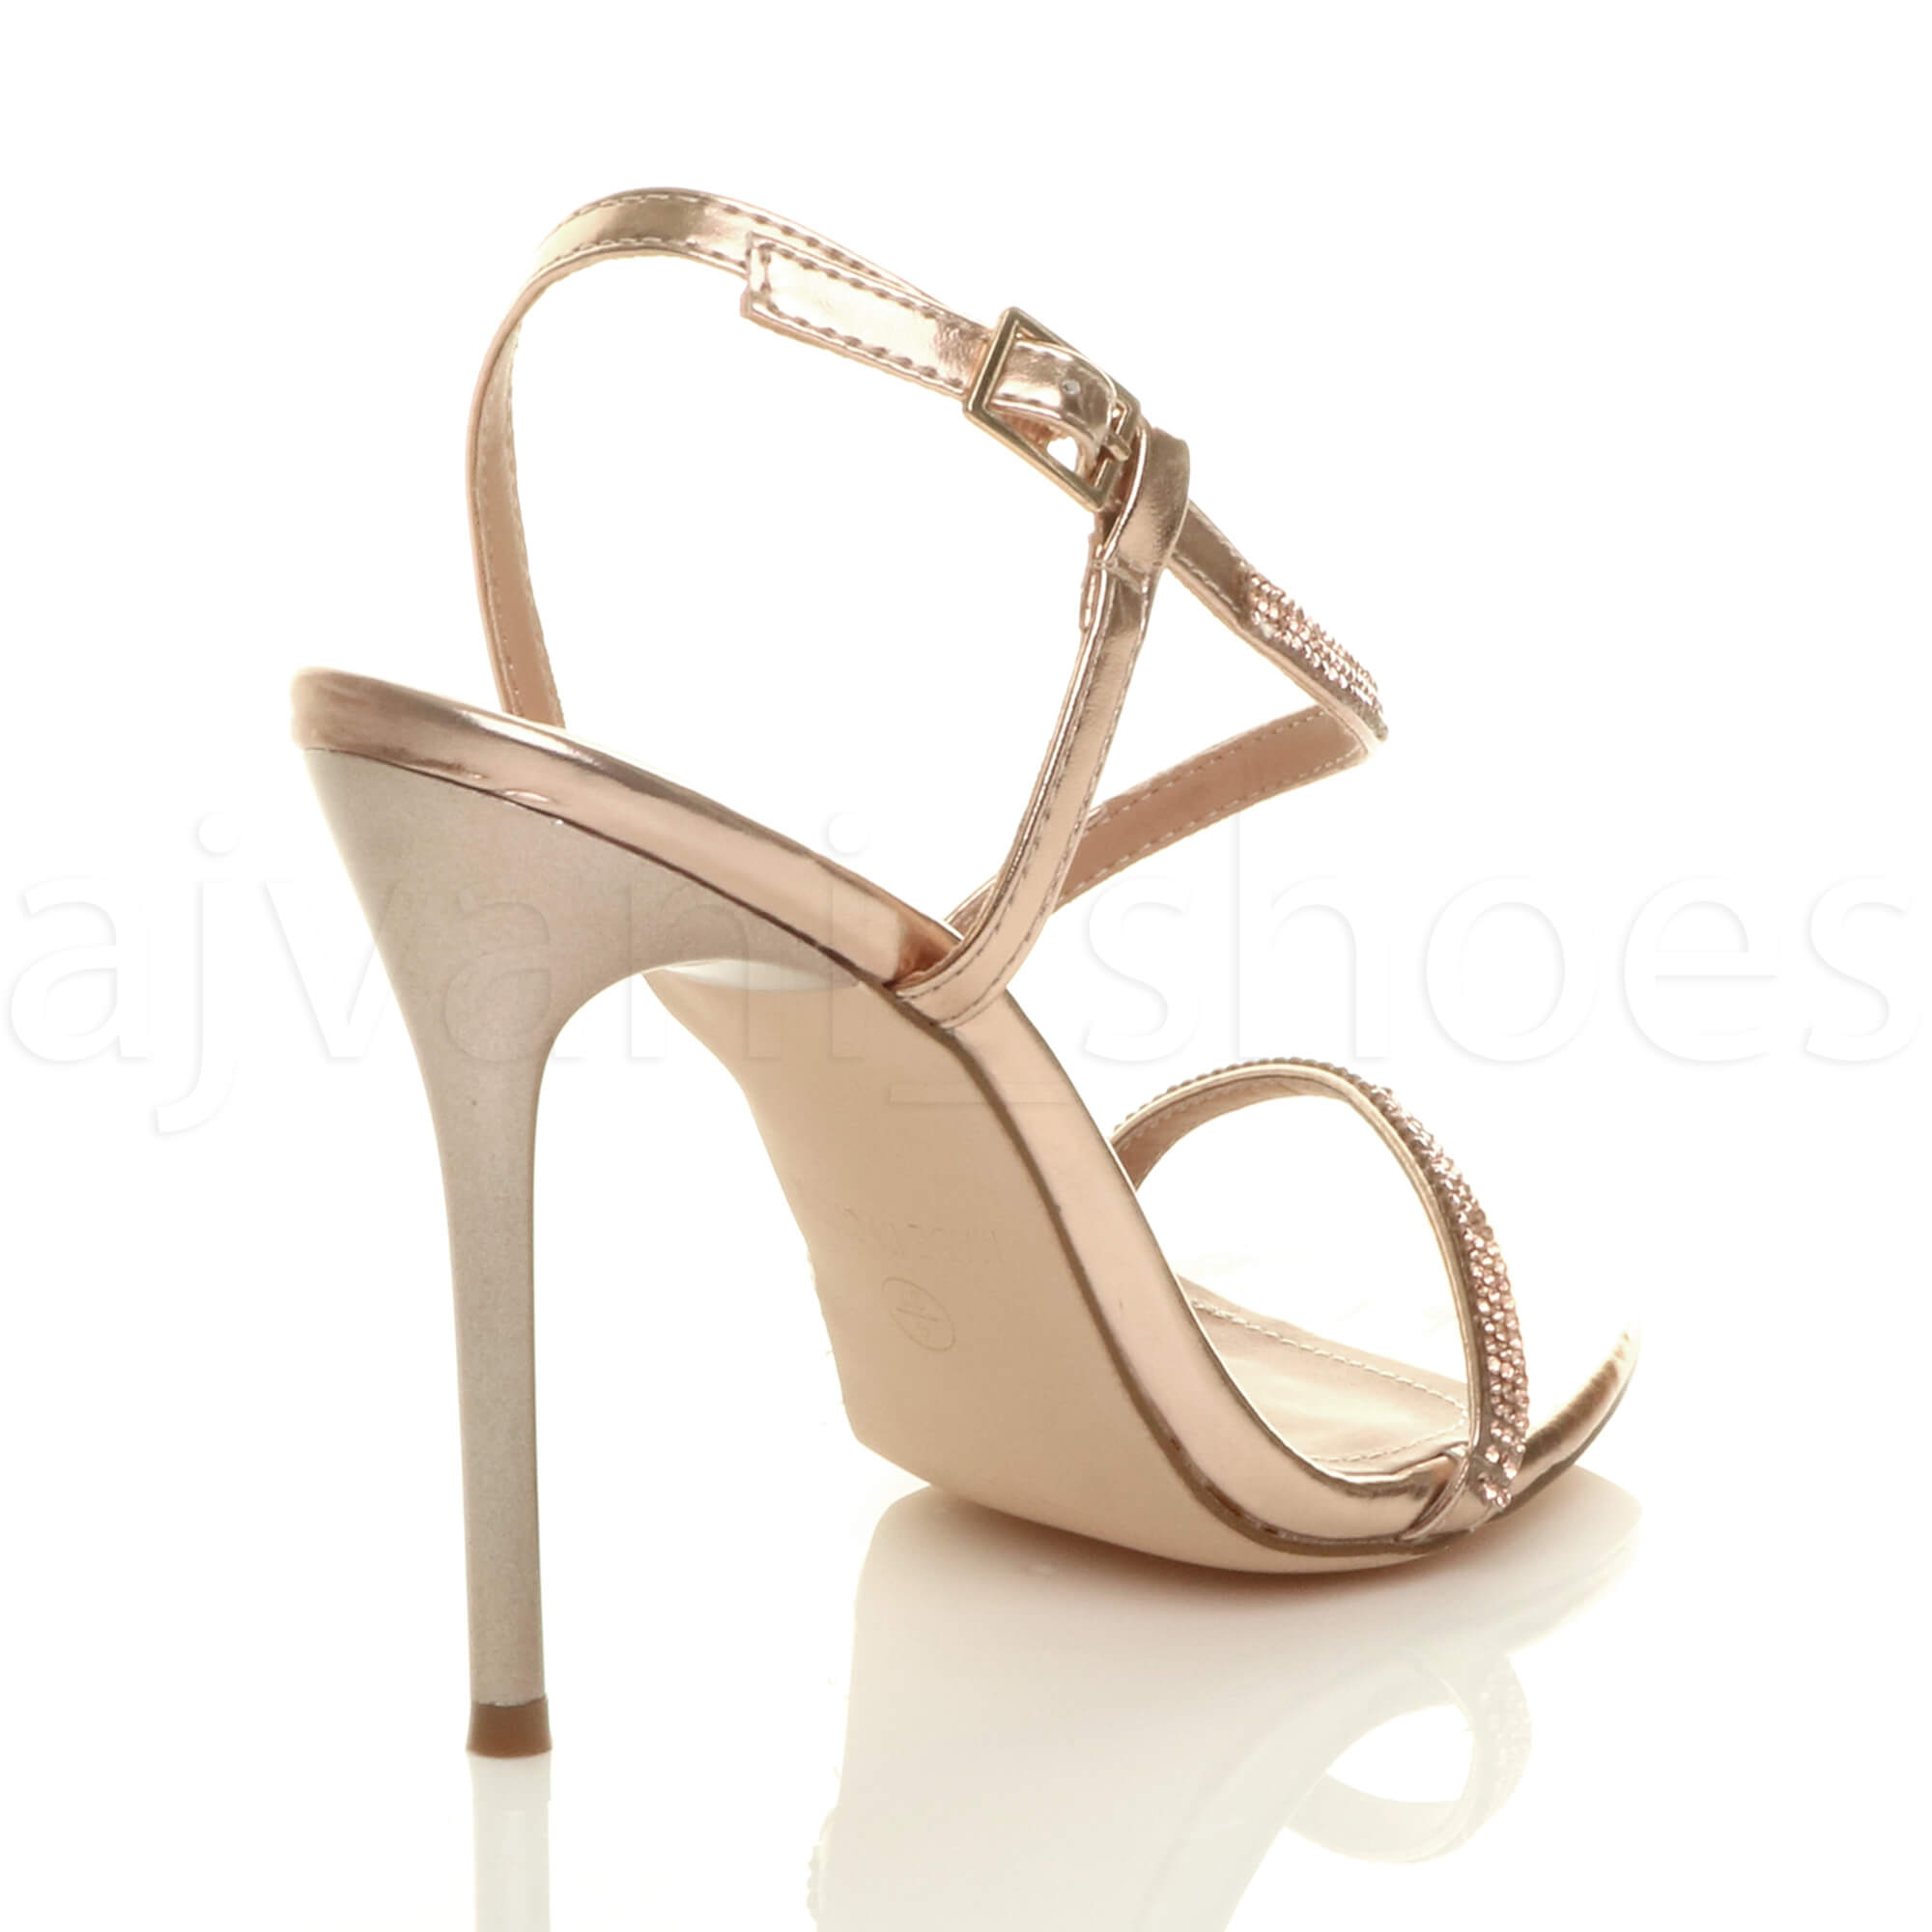 WOMENS-LADIES-HIGH-HEEL-DIAMANTE-BARELY-THERE-STRAPPY-EVENING-SANDALS-SIZE thumbnail 13